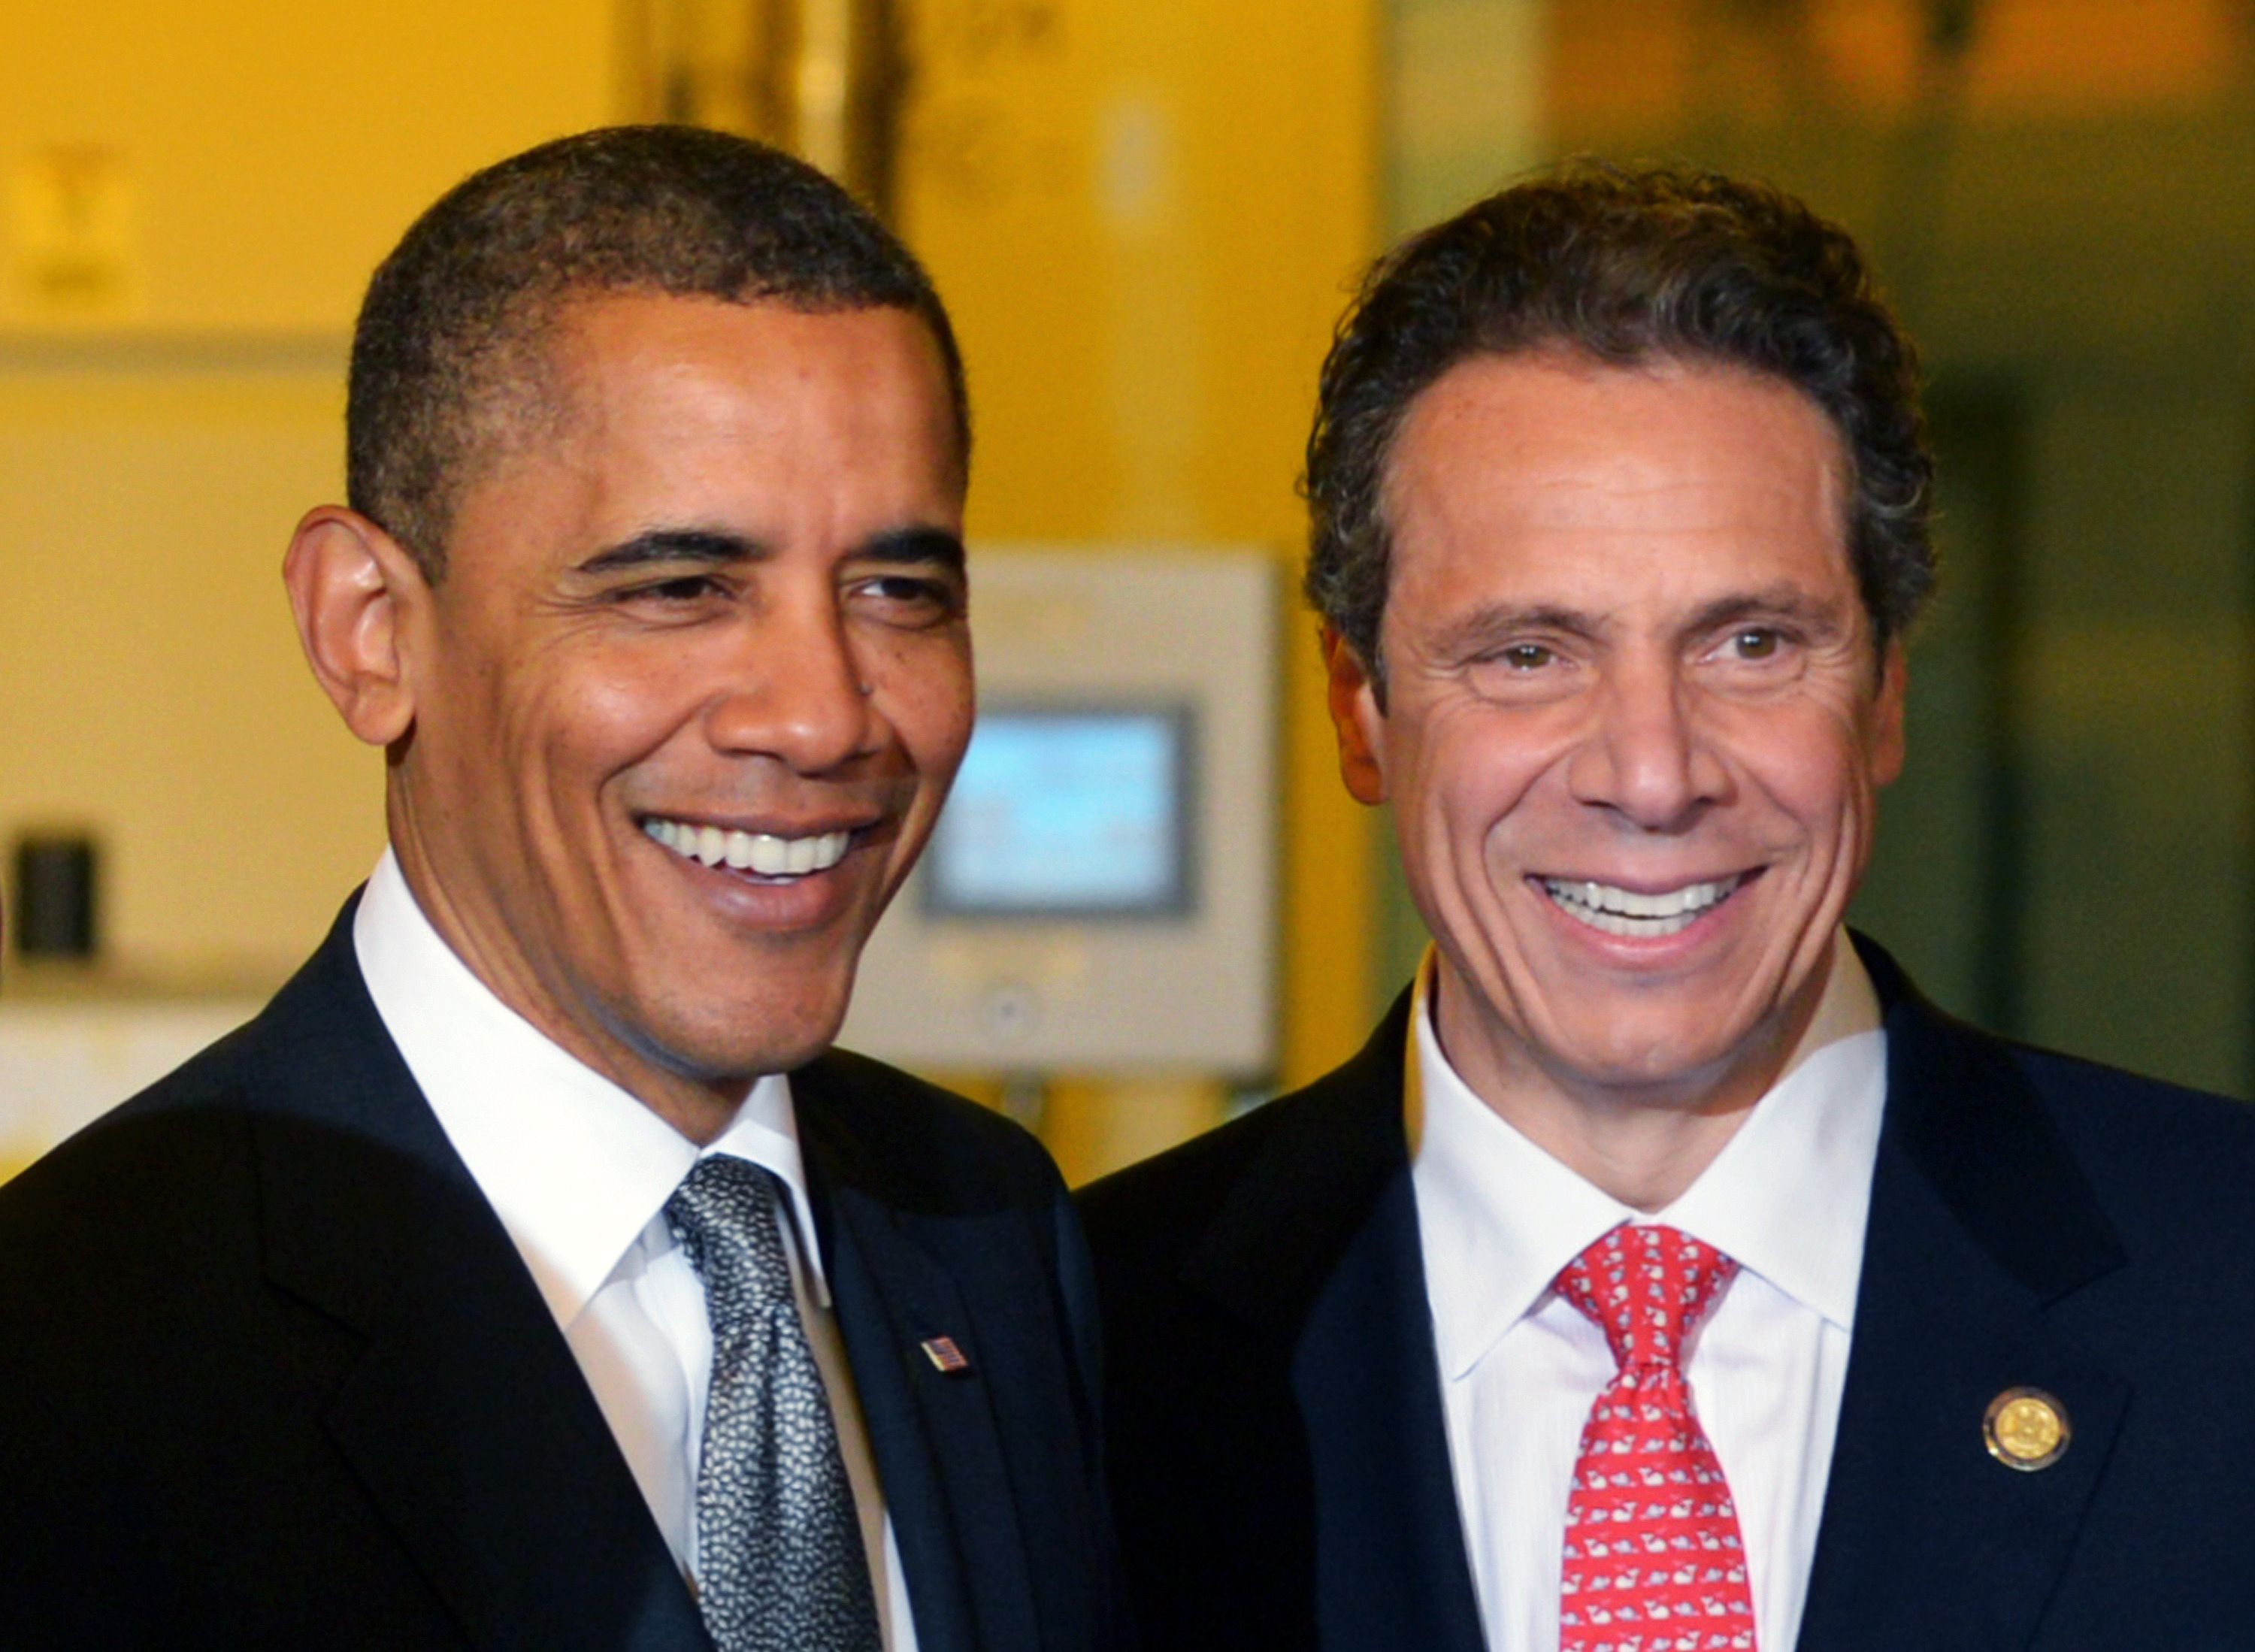 Image result for andrew cuomo and obama pics